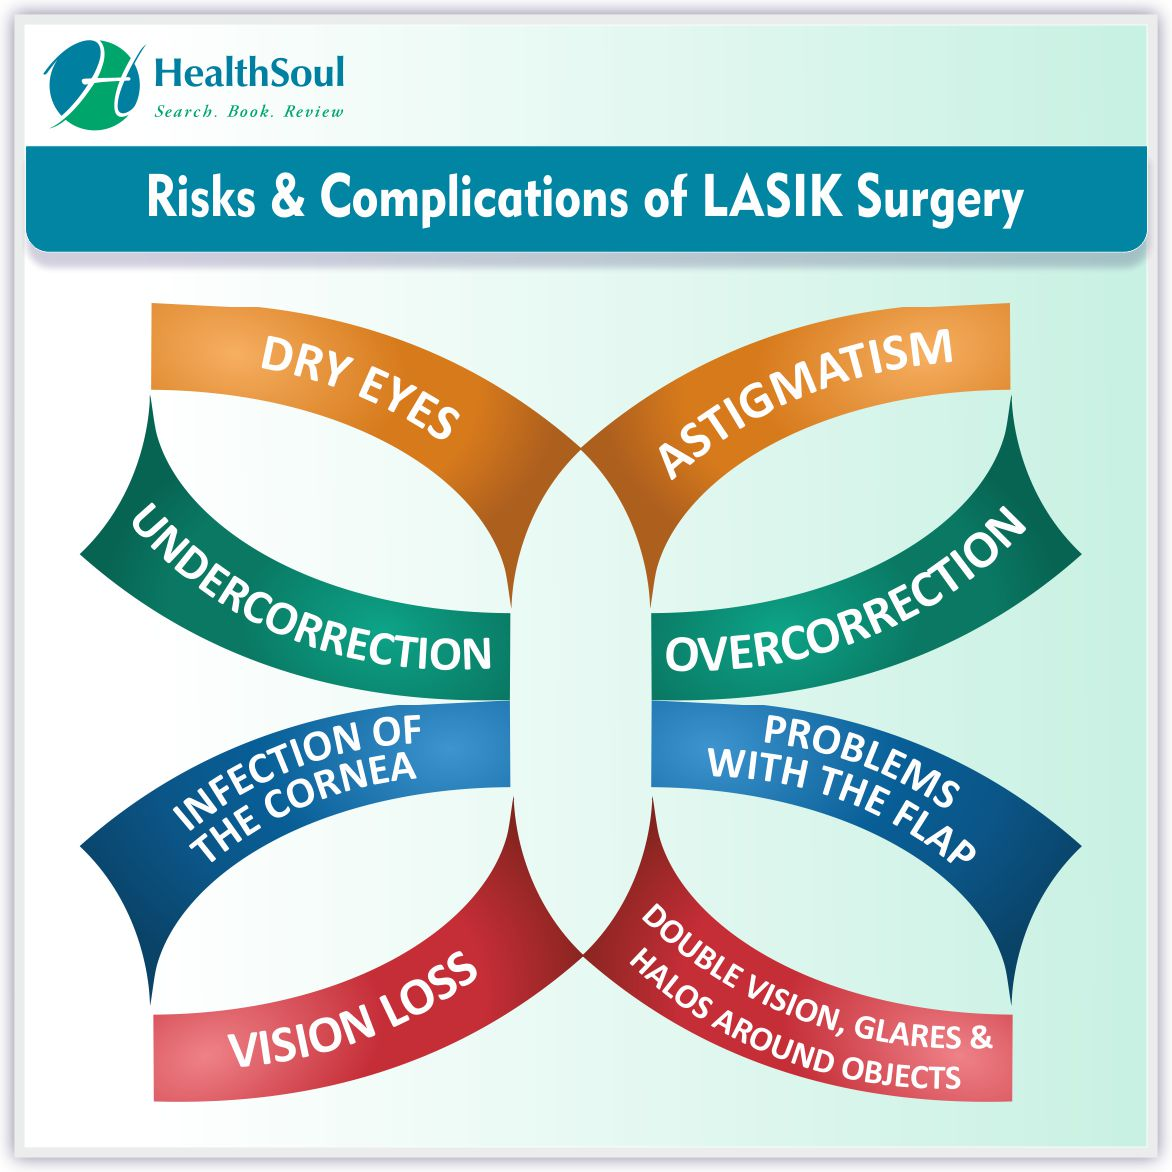 Risks & Complications of LASIK Surgery | HealthSoul